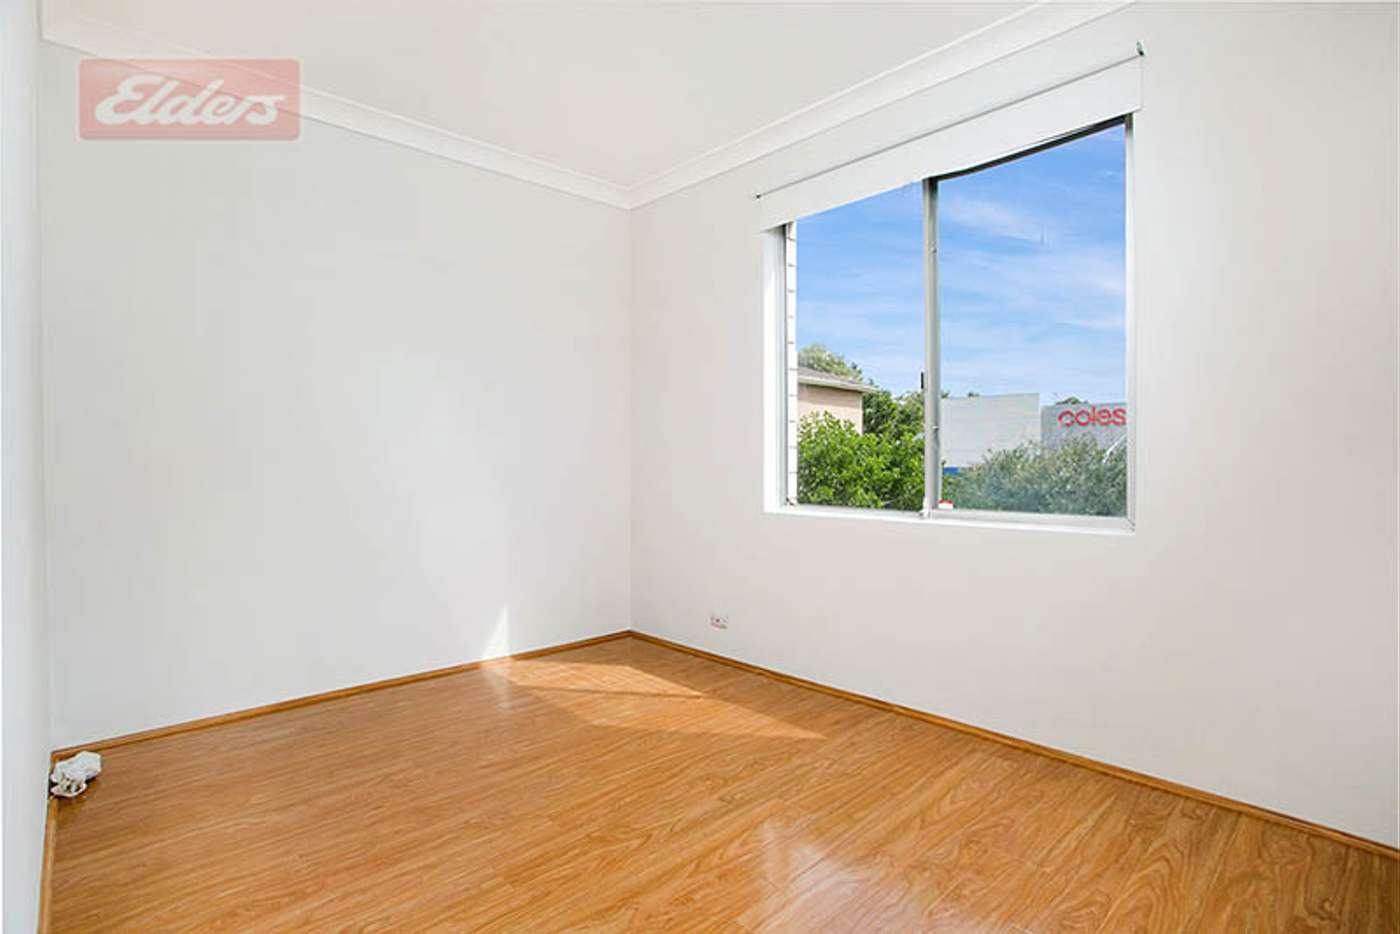 Fifth view of Homely unit listing, 21/24 Port Hacking Road, Sylvania NSW 2224